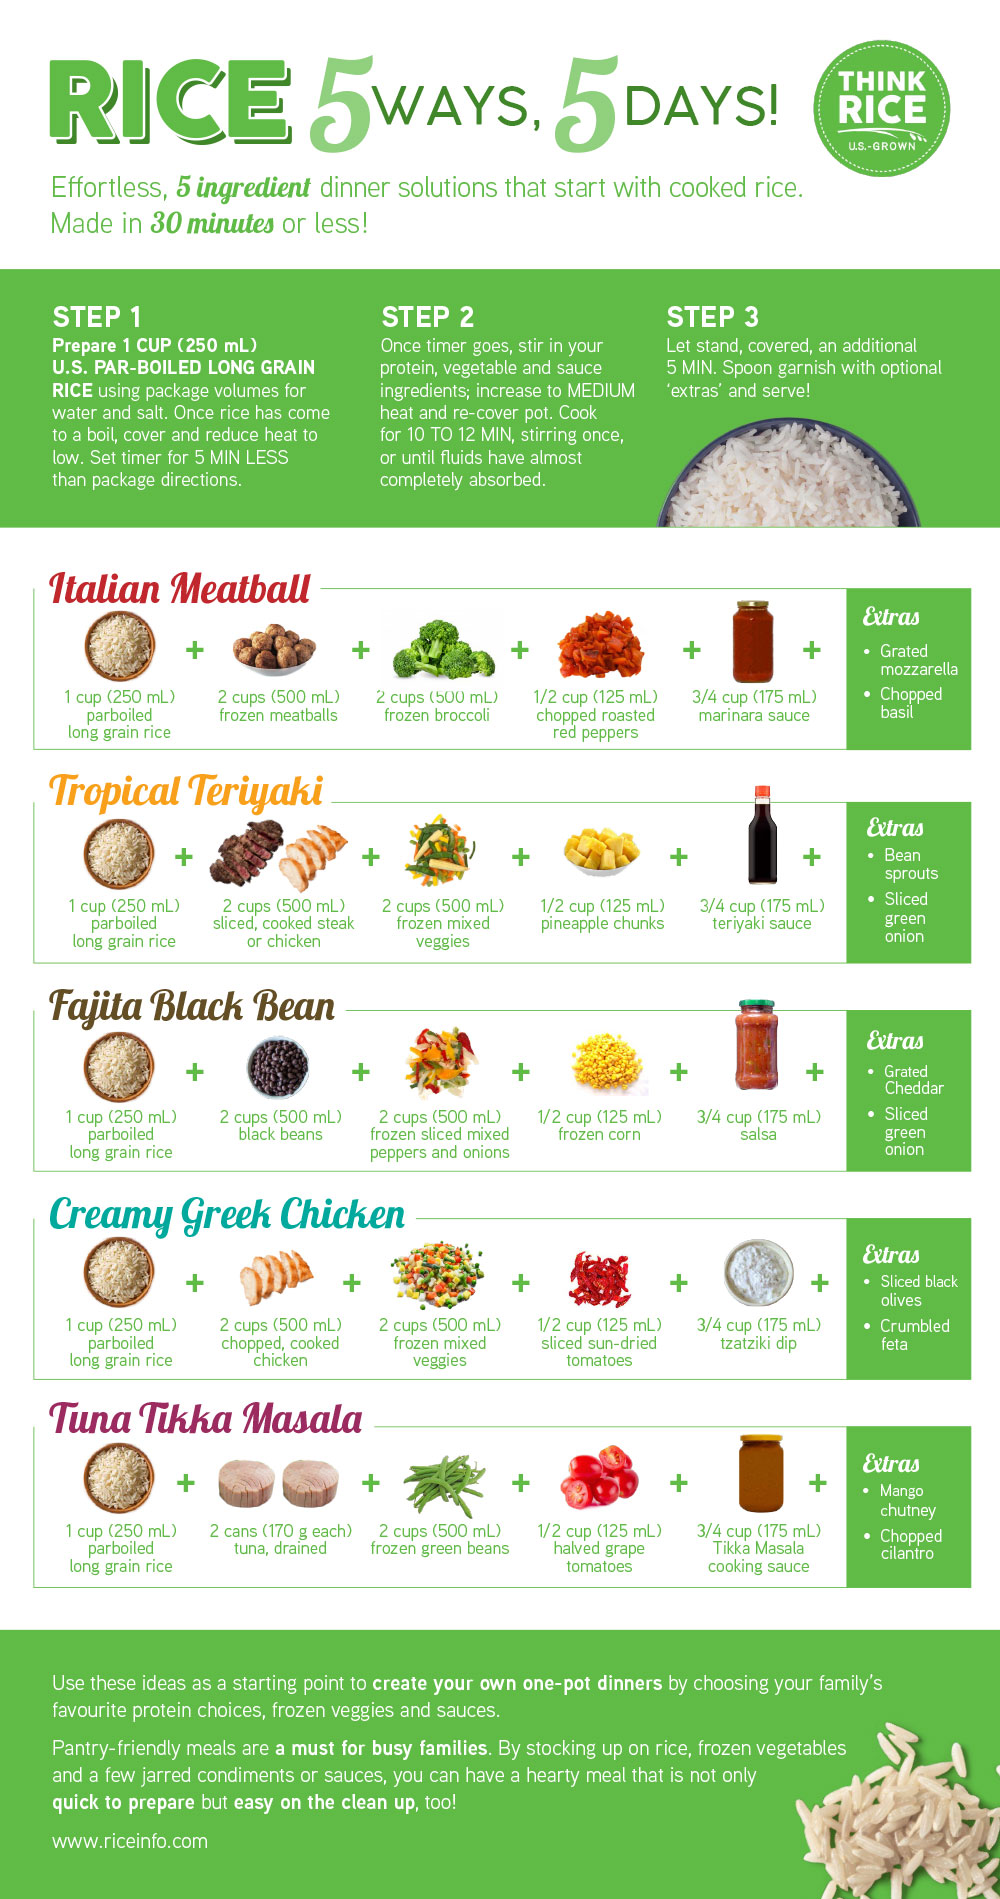 Rice 5Ways 5Days Infographic